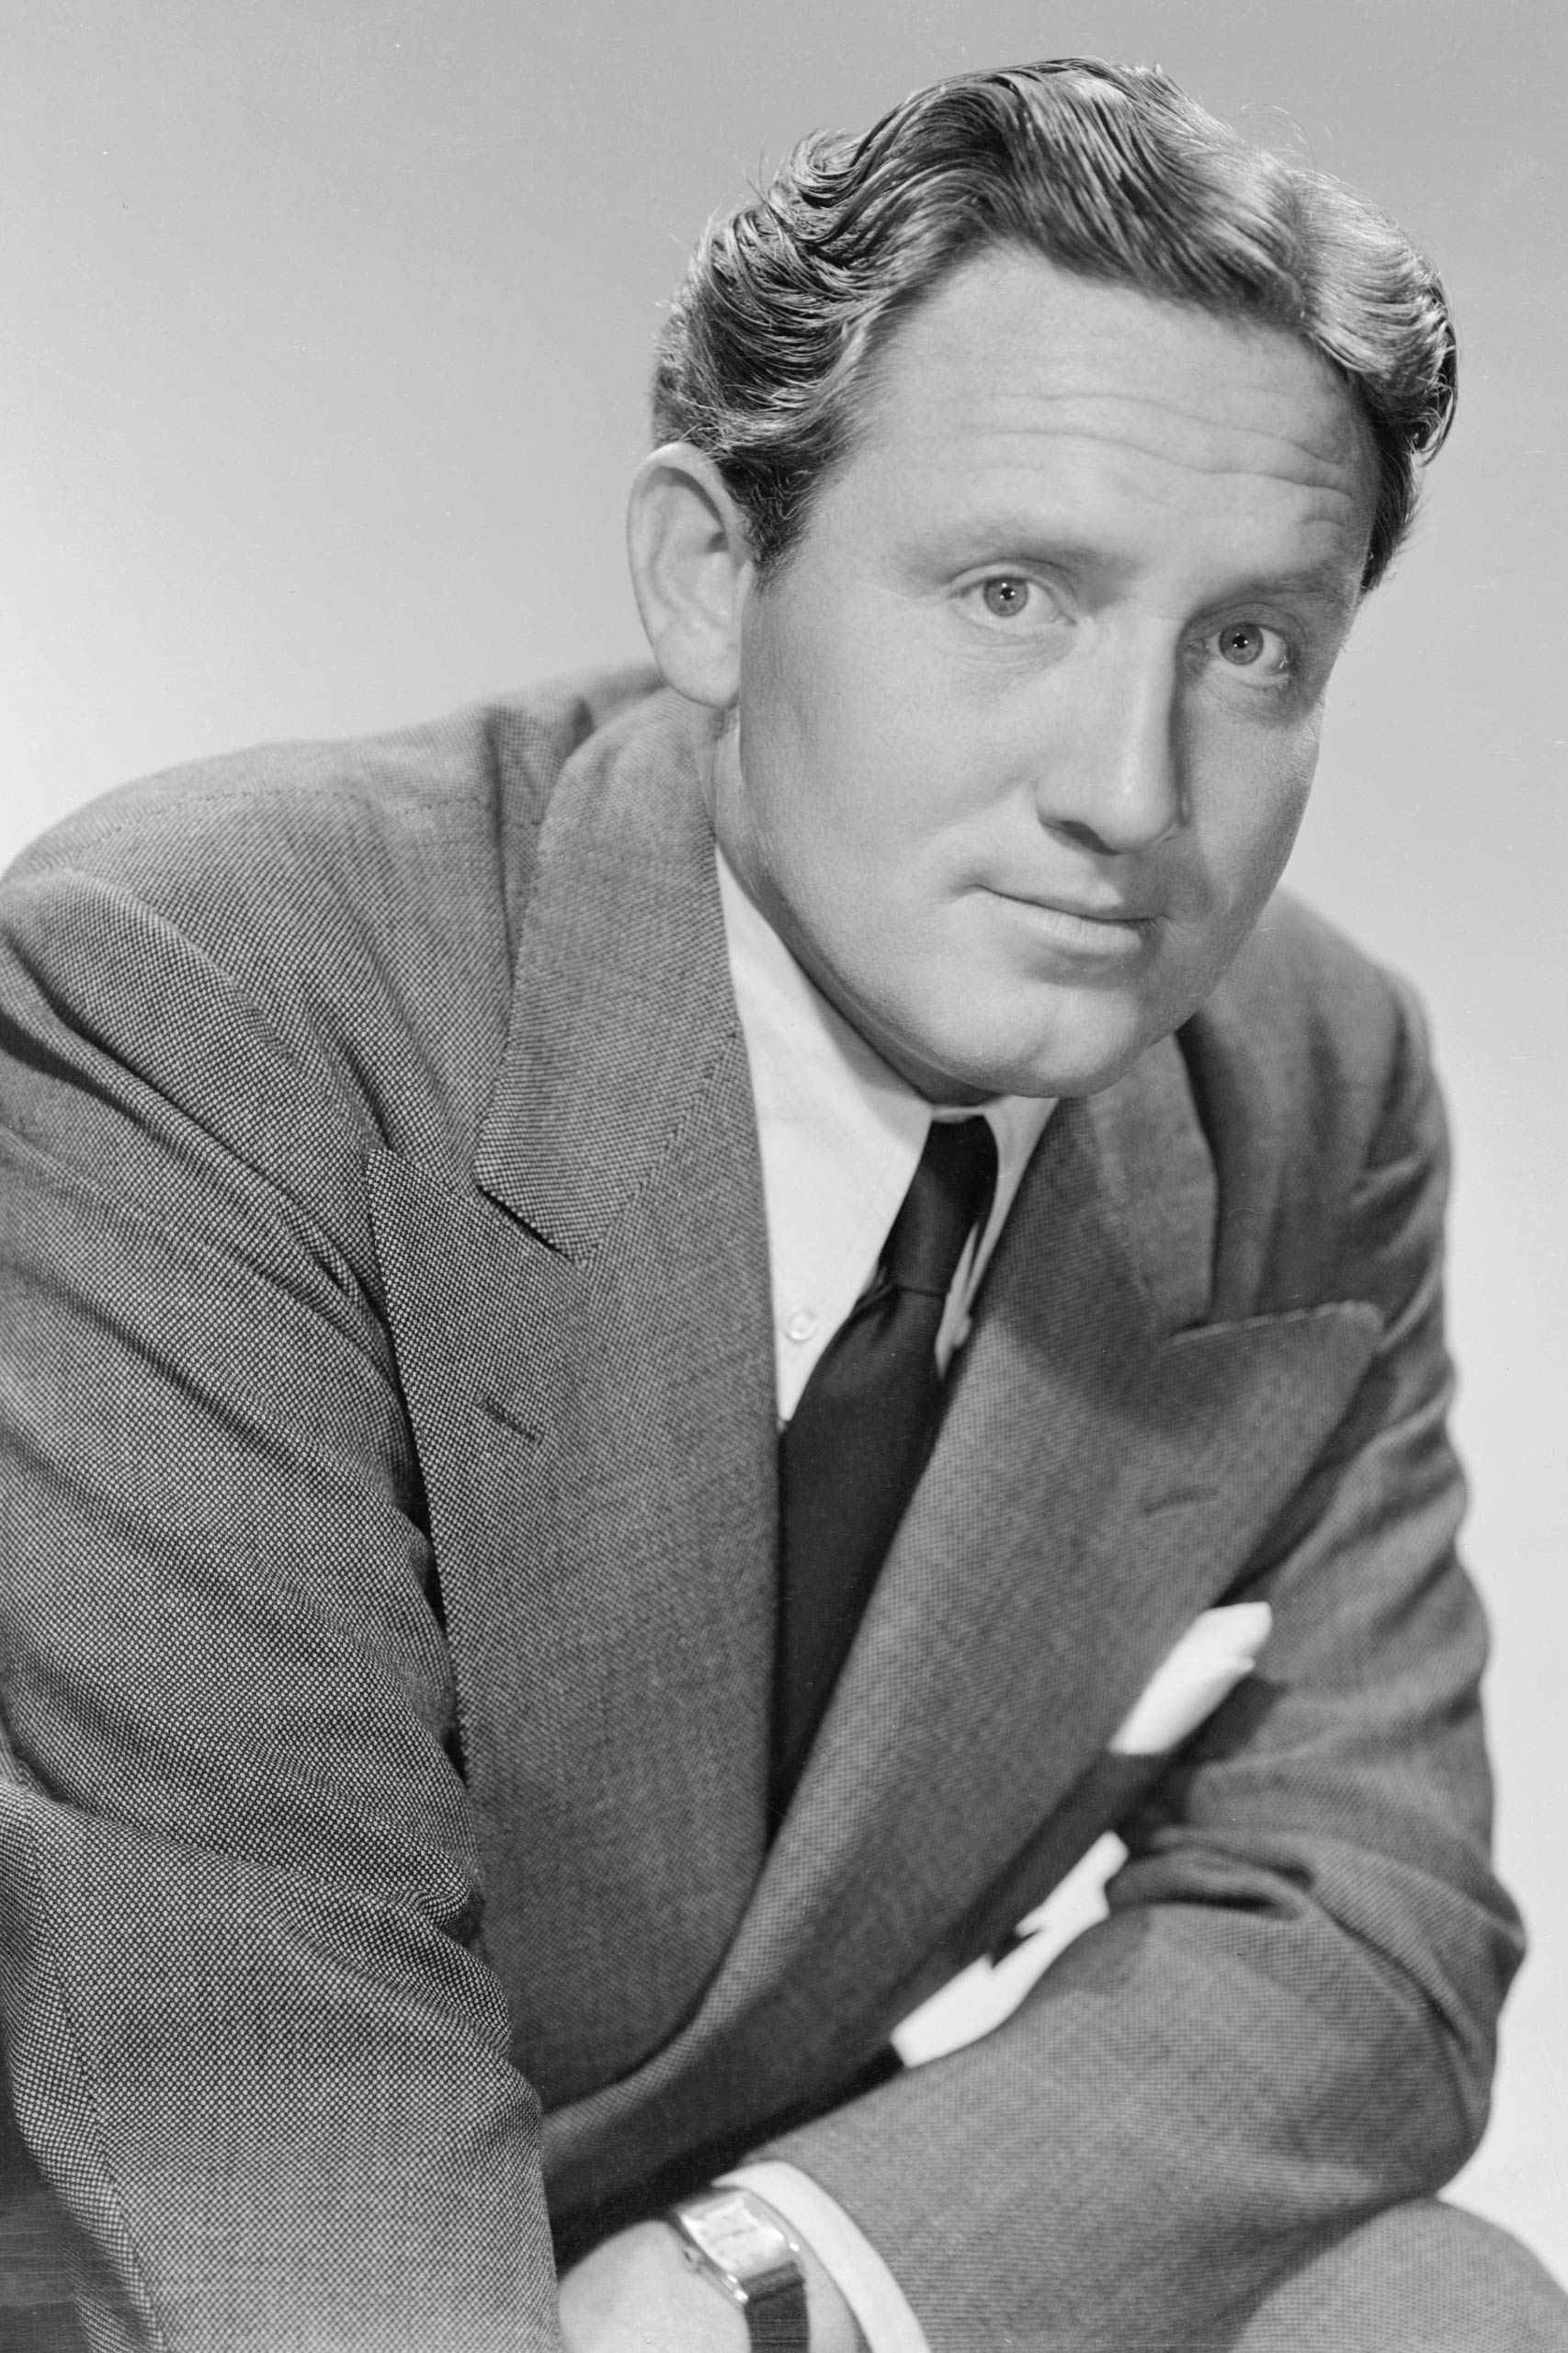 <strong>1938: Spencer Tracy - <i>Captains Courageous</i>                                   1939: Spencer Tracy - <i>Boys Town</i></strong>